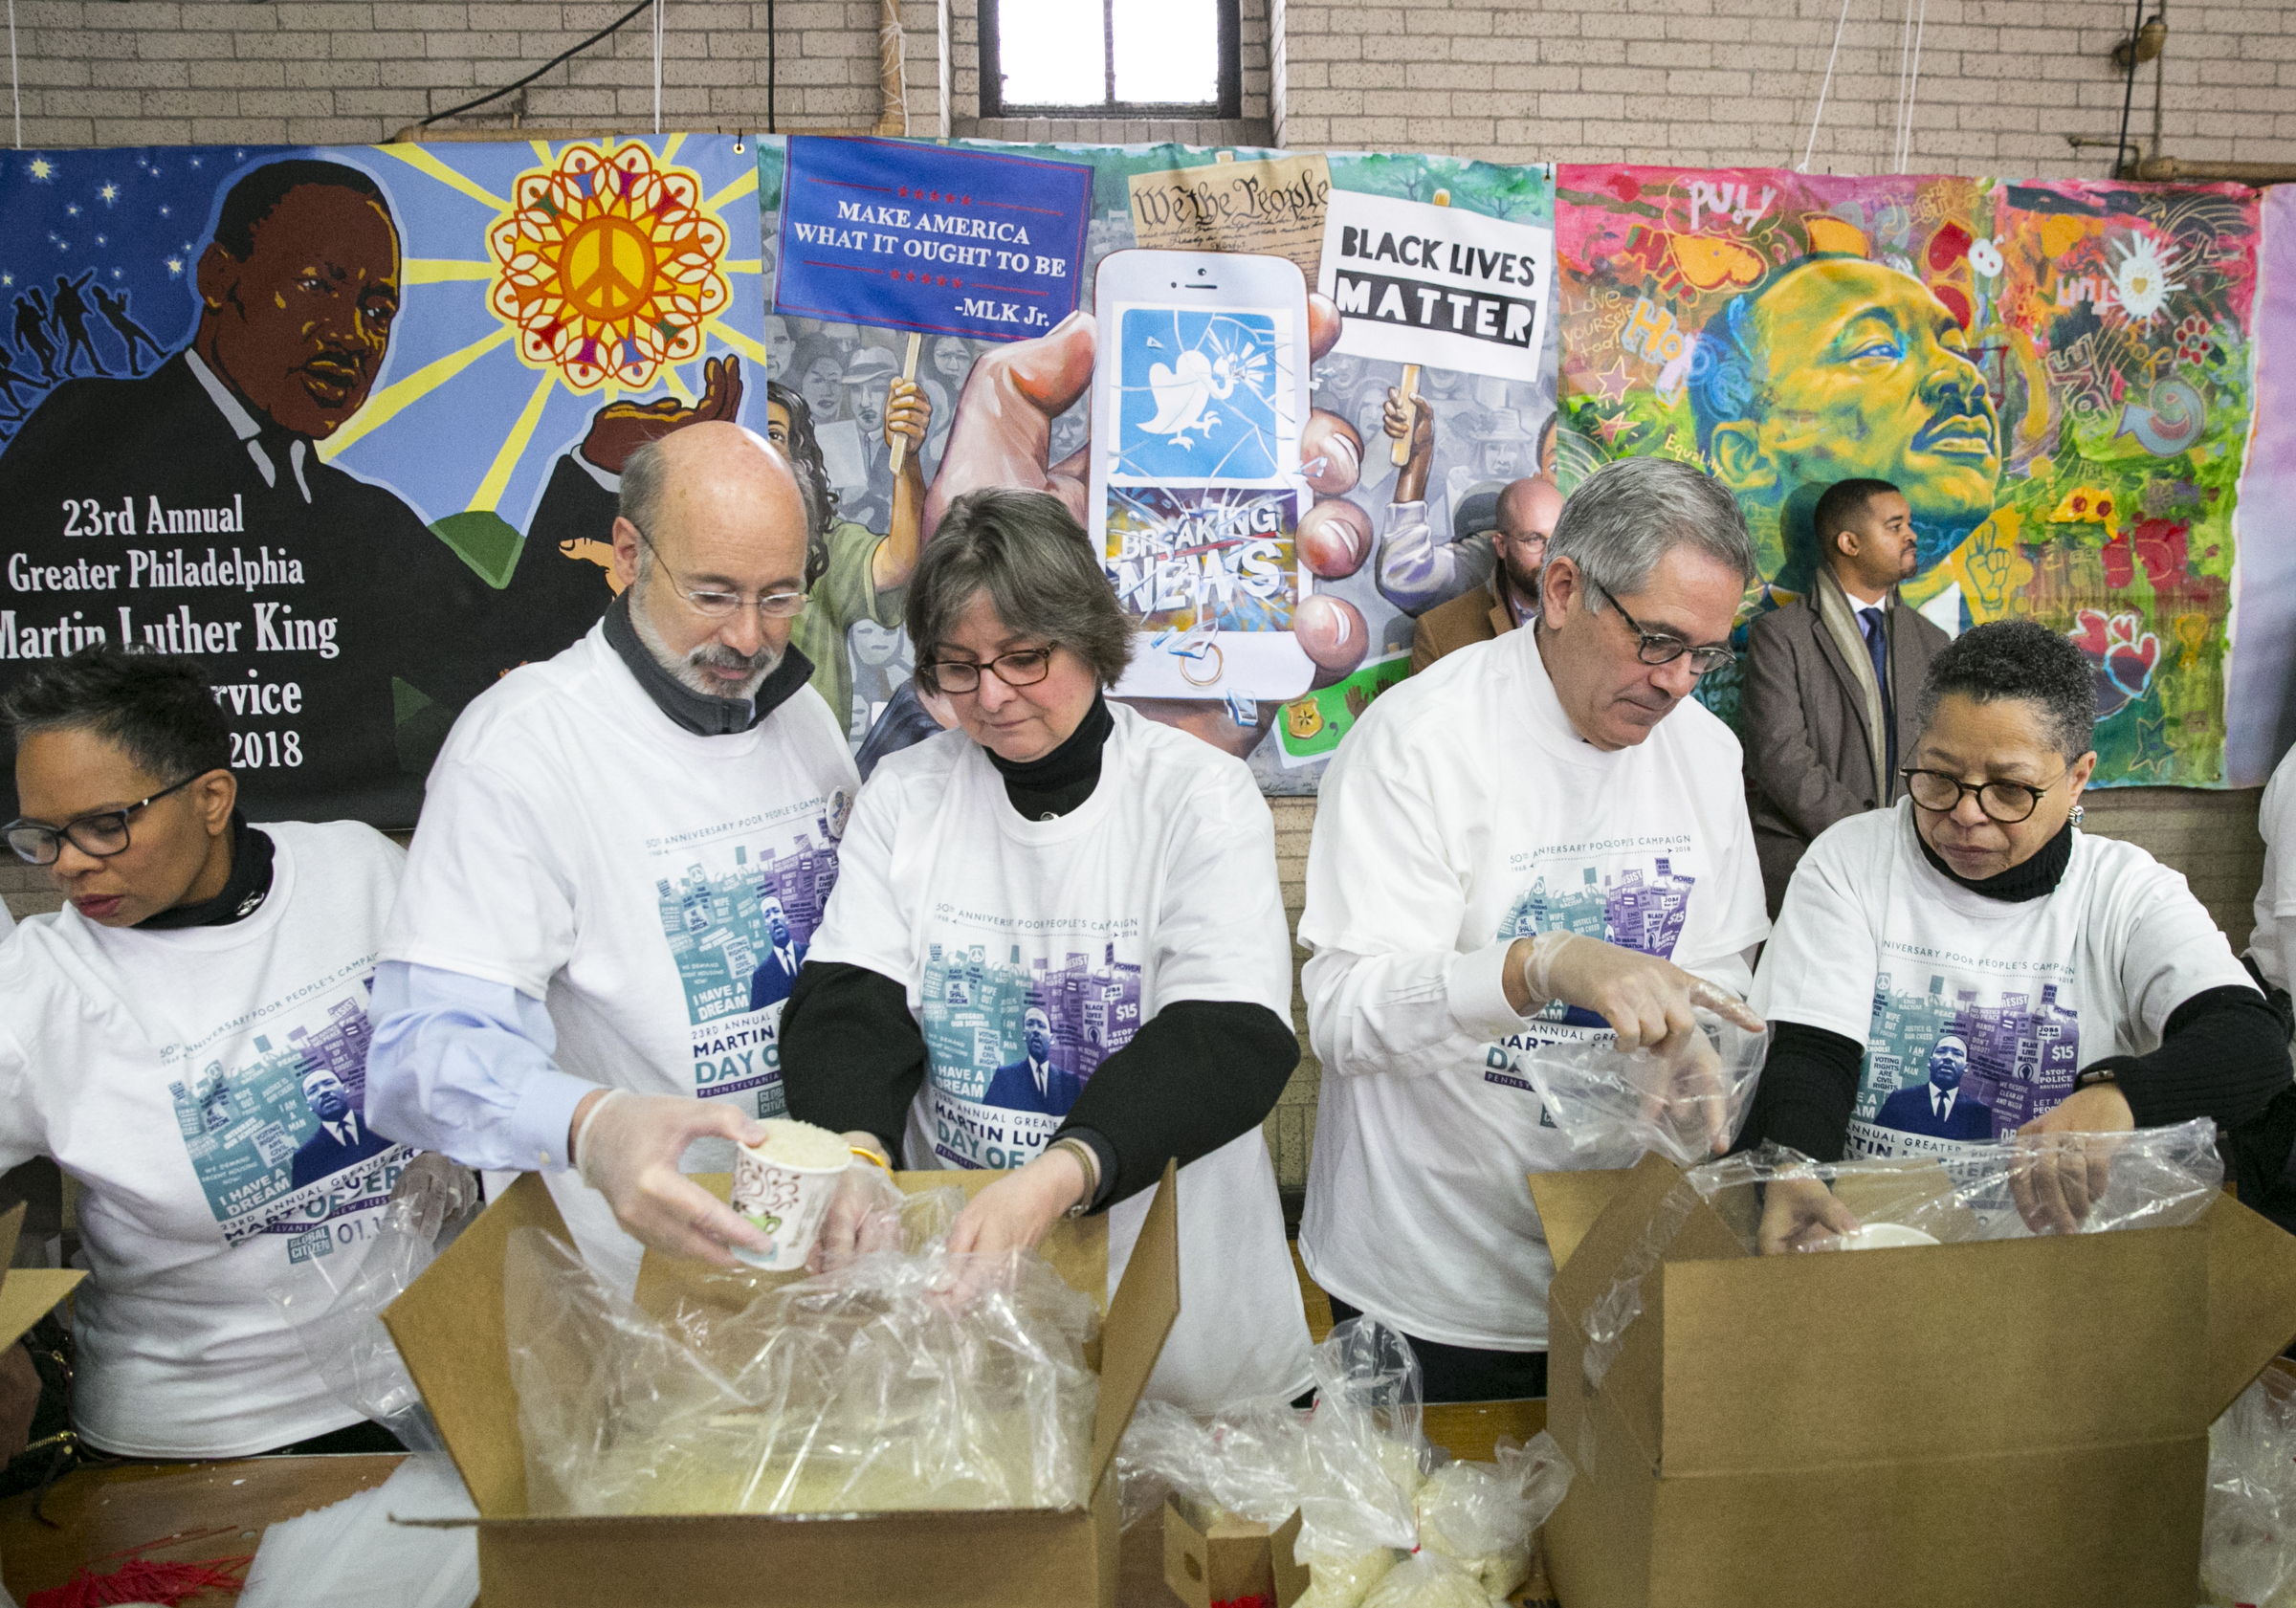 (Left to Right) Ava Willis-Barksdale, President of Girard College, Governor Tom Wolf, Frances Wolf, First Lady of PennsylvaniaVolunteers, Larry Krasner, District Attorney of Philadelphia, and Sharmain Matlock-Turner, President and CEO of the Urban Affairs Coalition, volunteer, portioning out rice, at the MLK Day of Service at Girard College, in Philadelphia, Monday, Jan. 15, 2018. JESSICA GRIFFIN / Staff Photographer